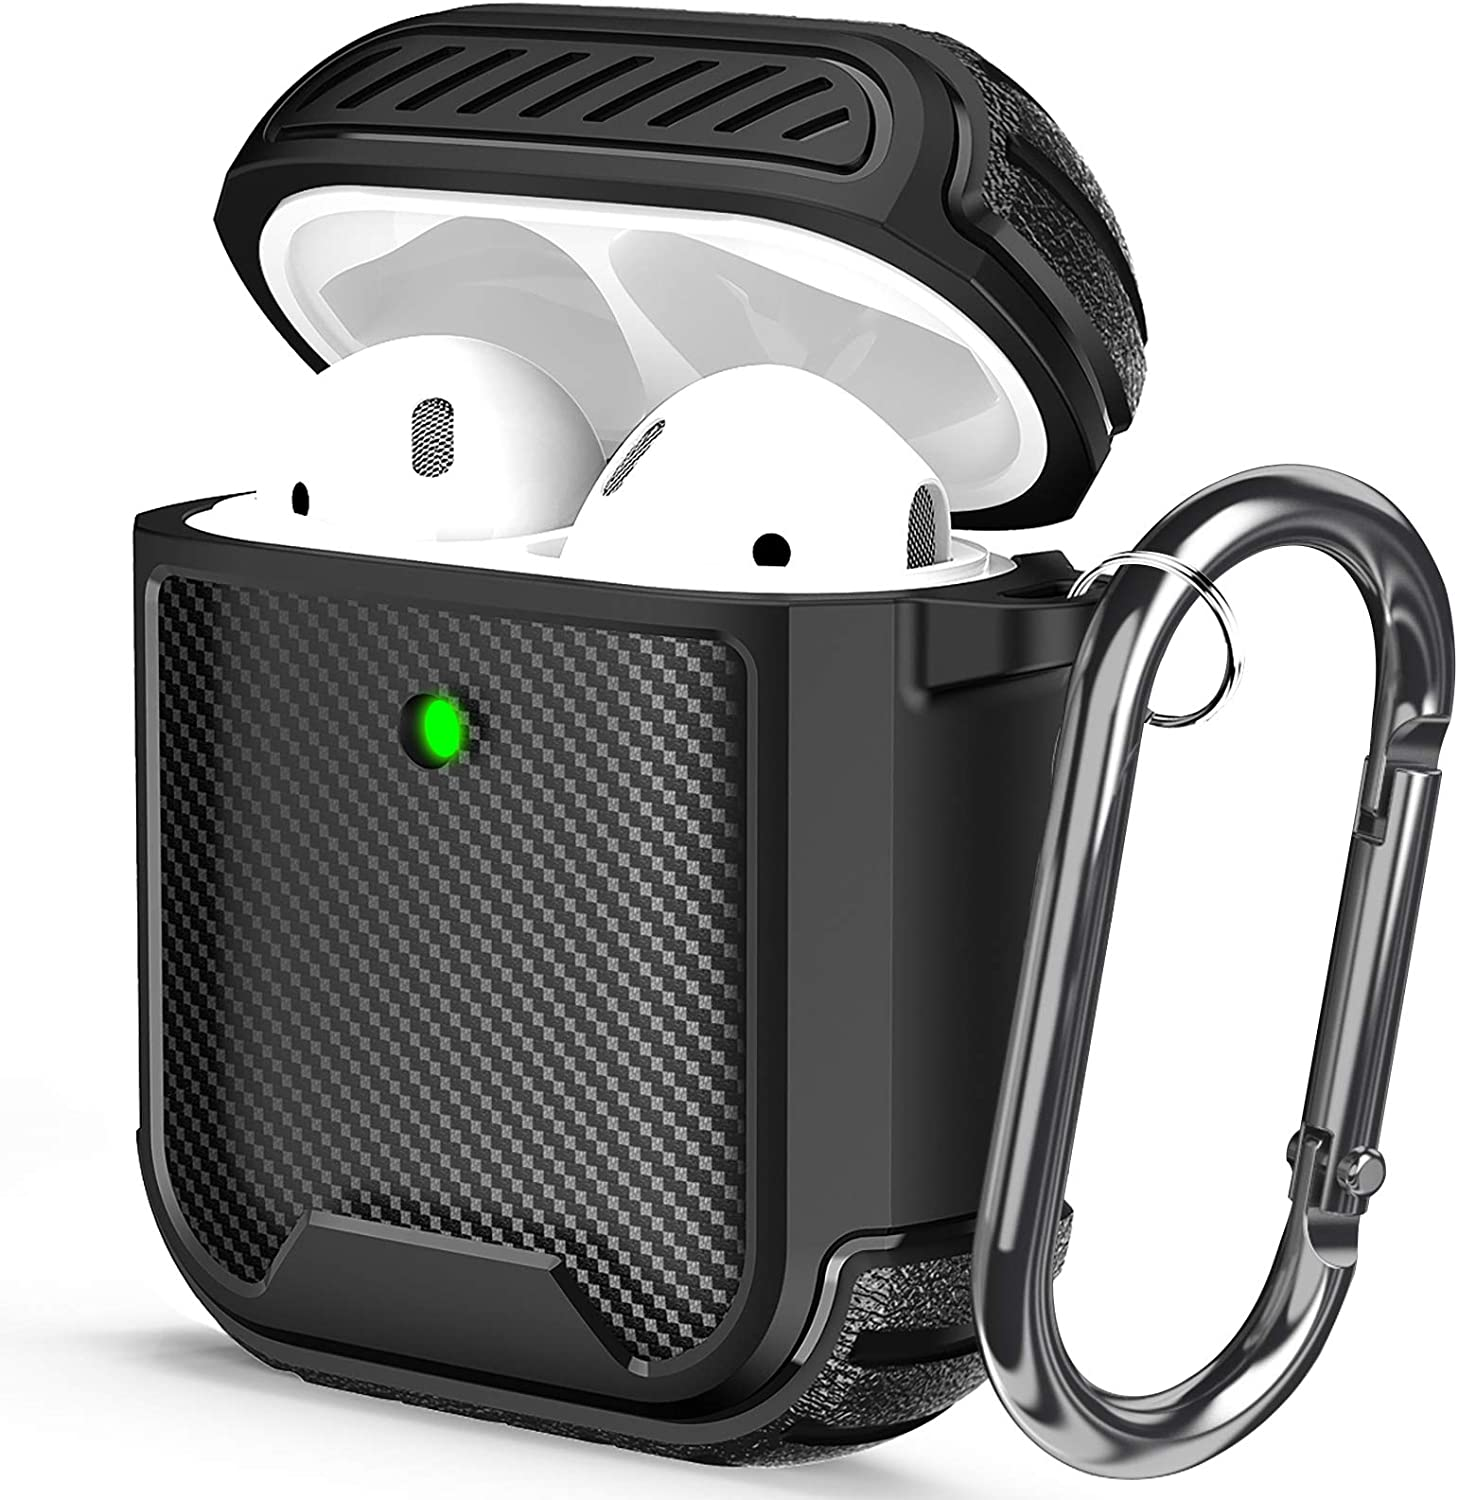 Maxjoy Airpod Case Cover Texture TPU Full-Body Rugged Protective Case for Apple Airpods Case 2 with Carabiner Dustproof Shockproof Wireless Charging Case Front Led Visible (Black)